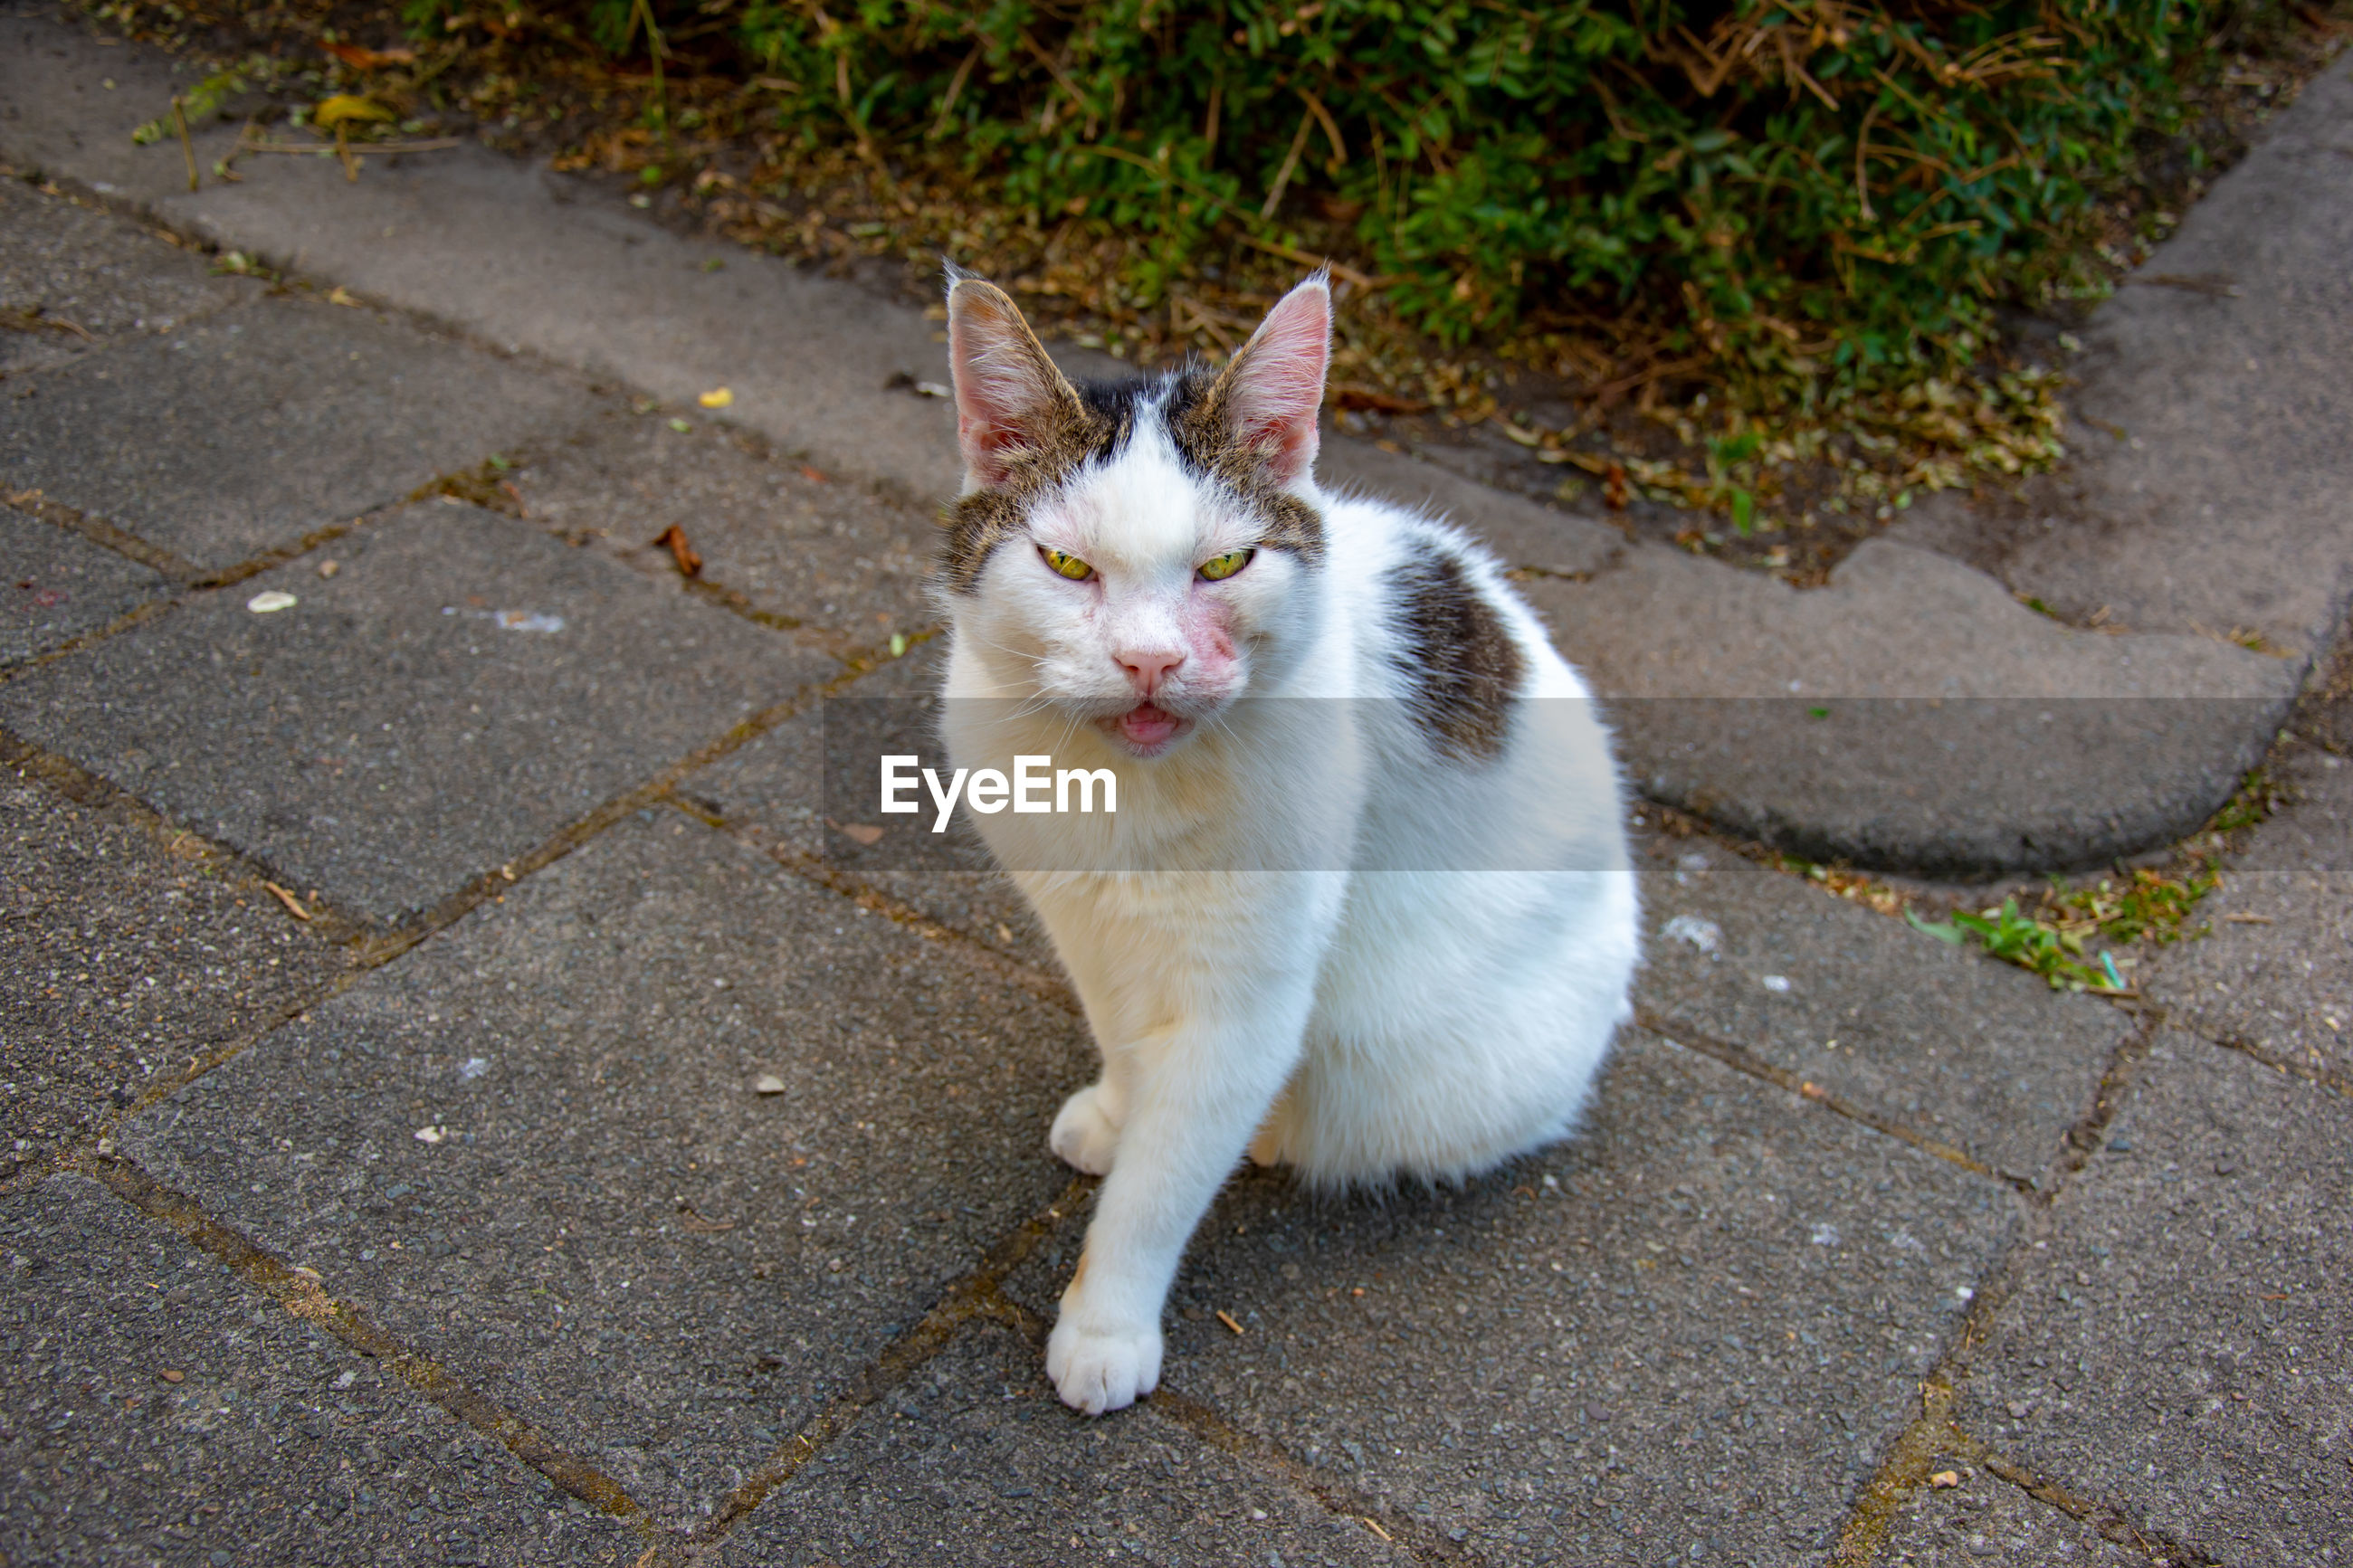 HIGH ANGLE VIEW PORTRAIT OF CAT ON STREET